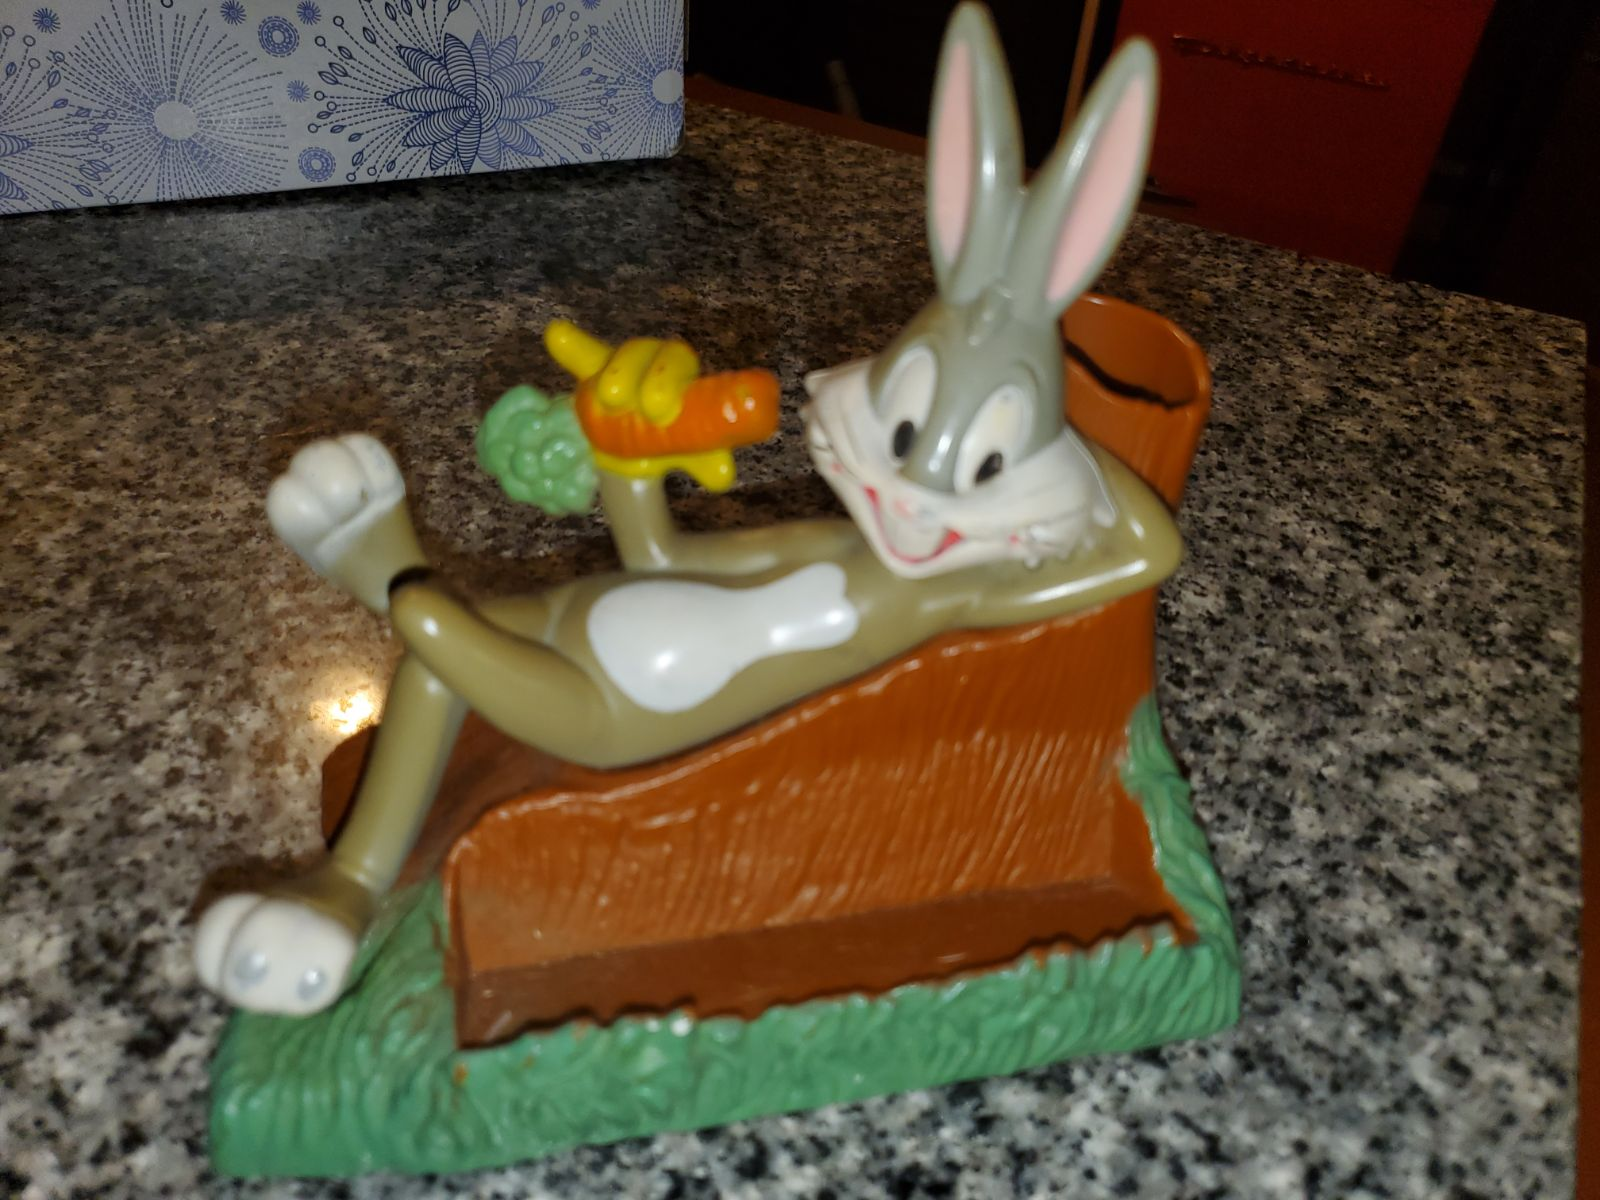 Looney Tunes Toons Bugs Bunny holder